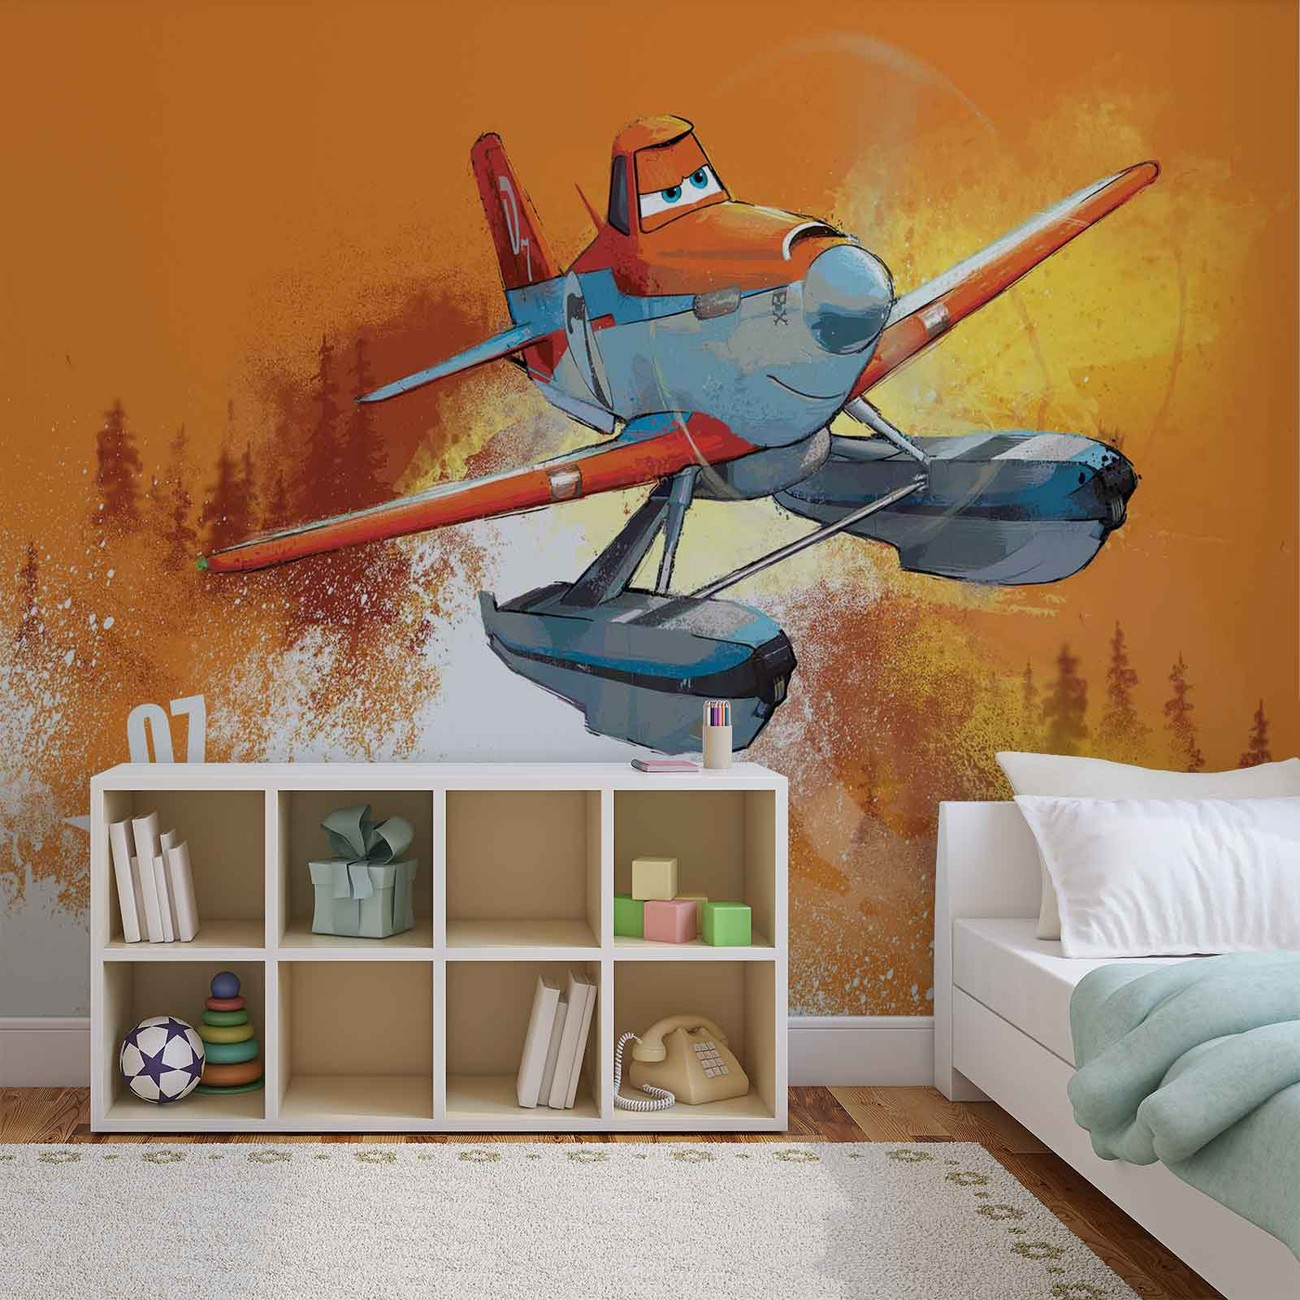 Disney planes dusty crophopper wall paper mural buy at europosters disney planes dusty crophopper wallpaper mural amipublicfo Image collections